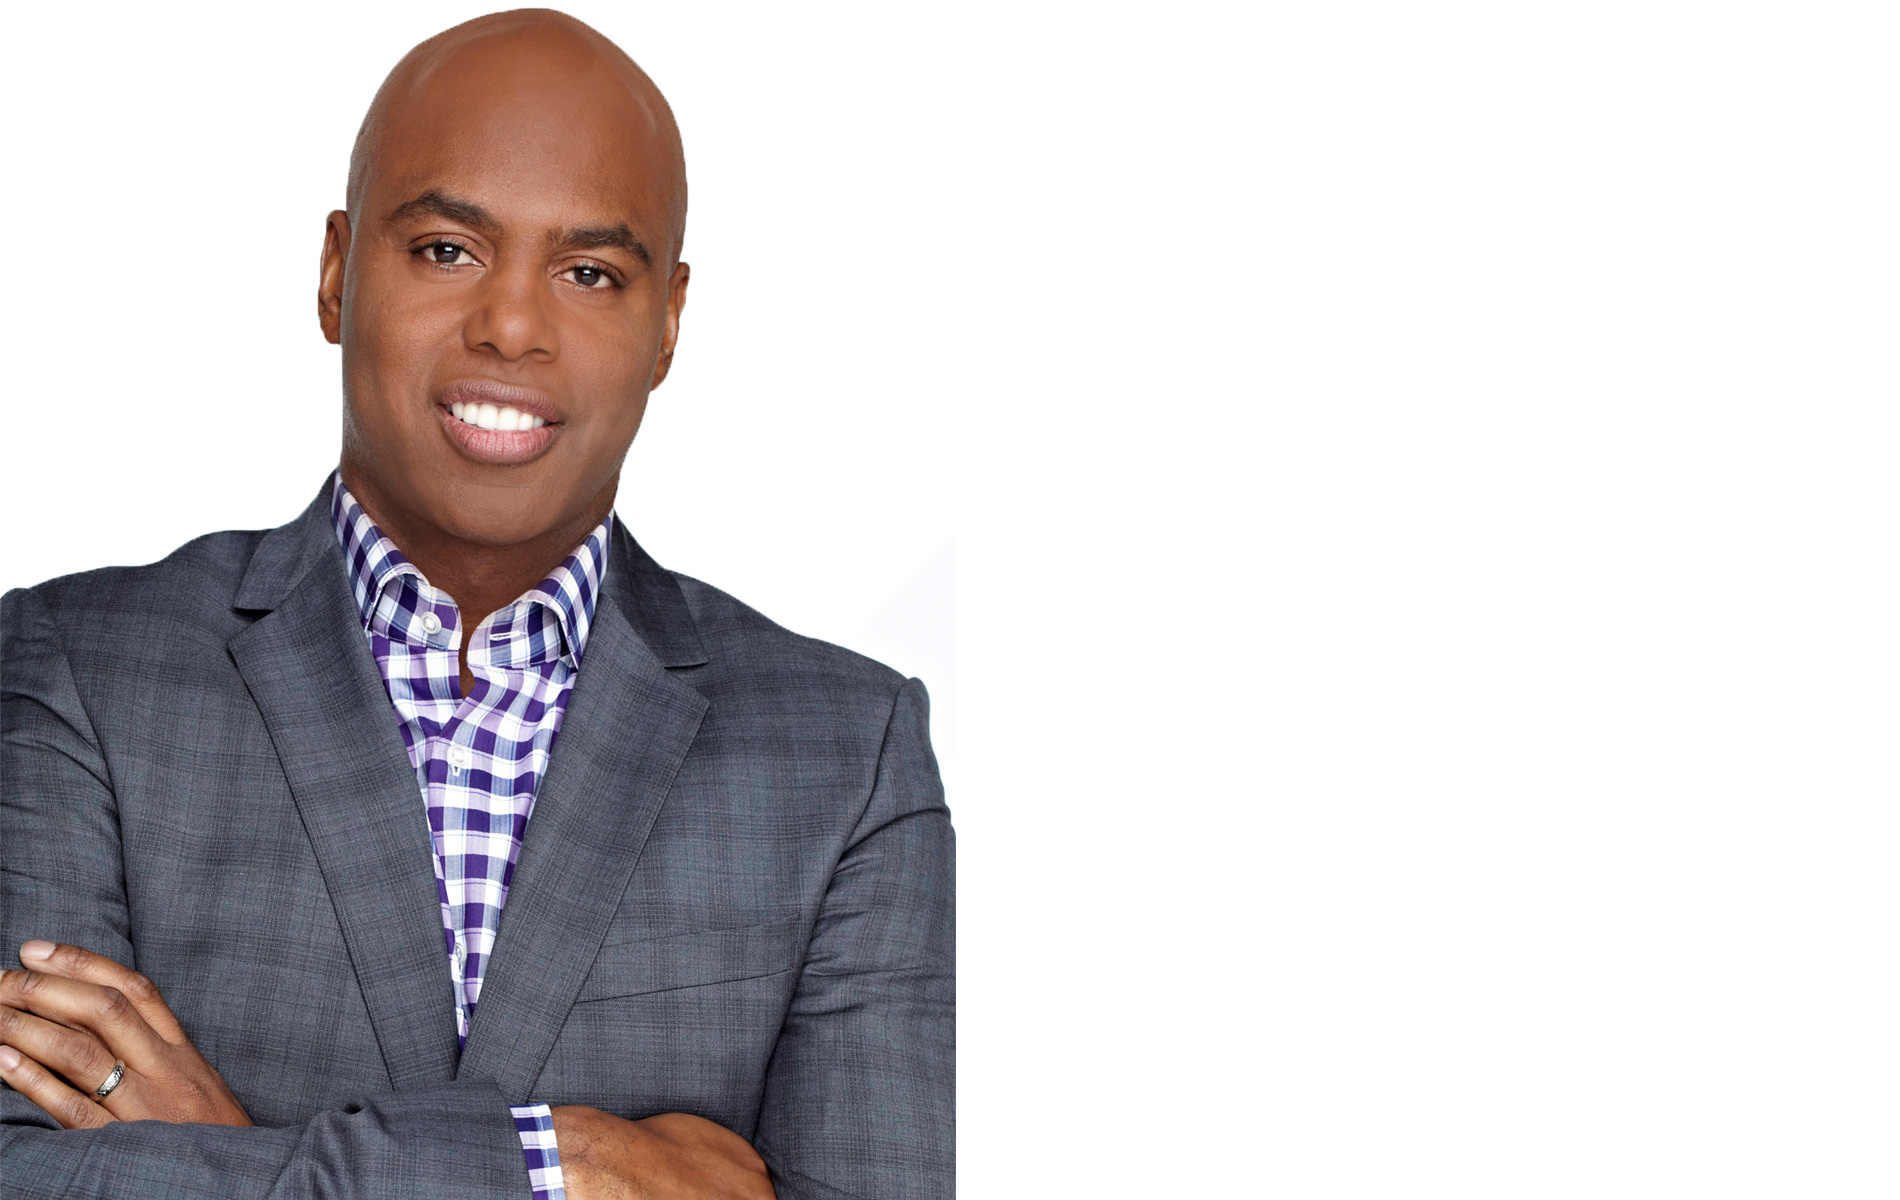 About Kevin Frazier